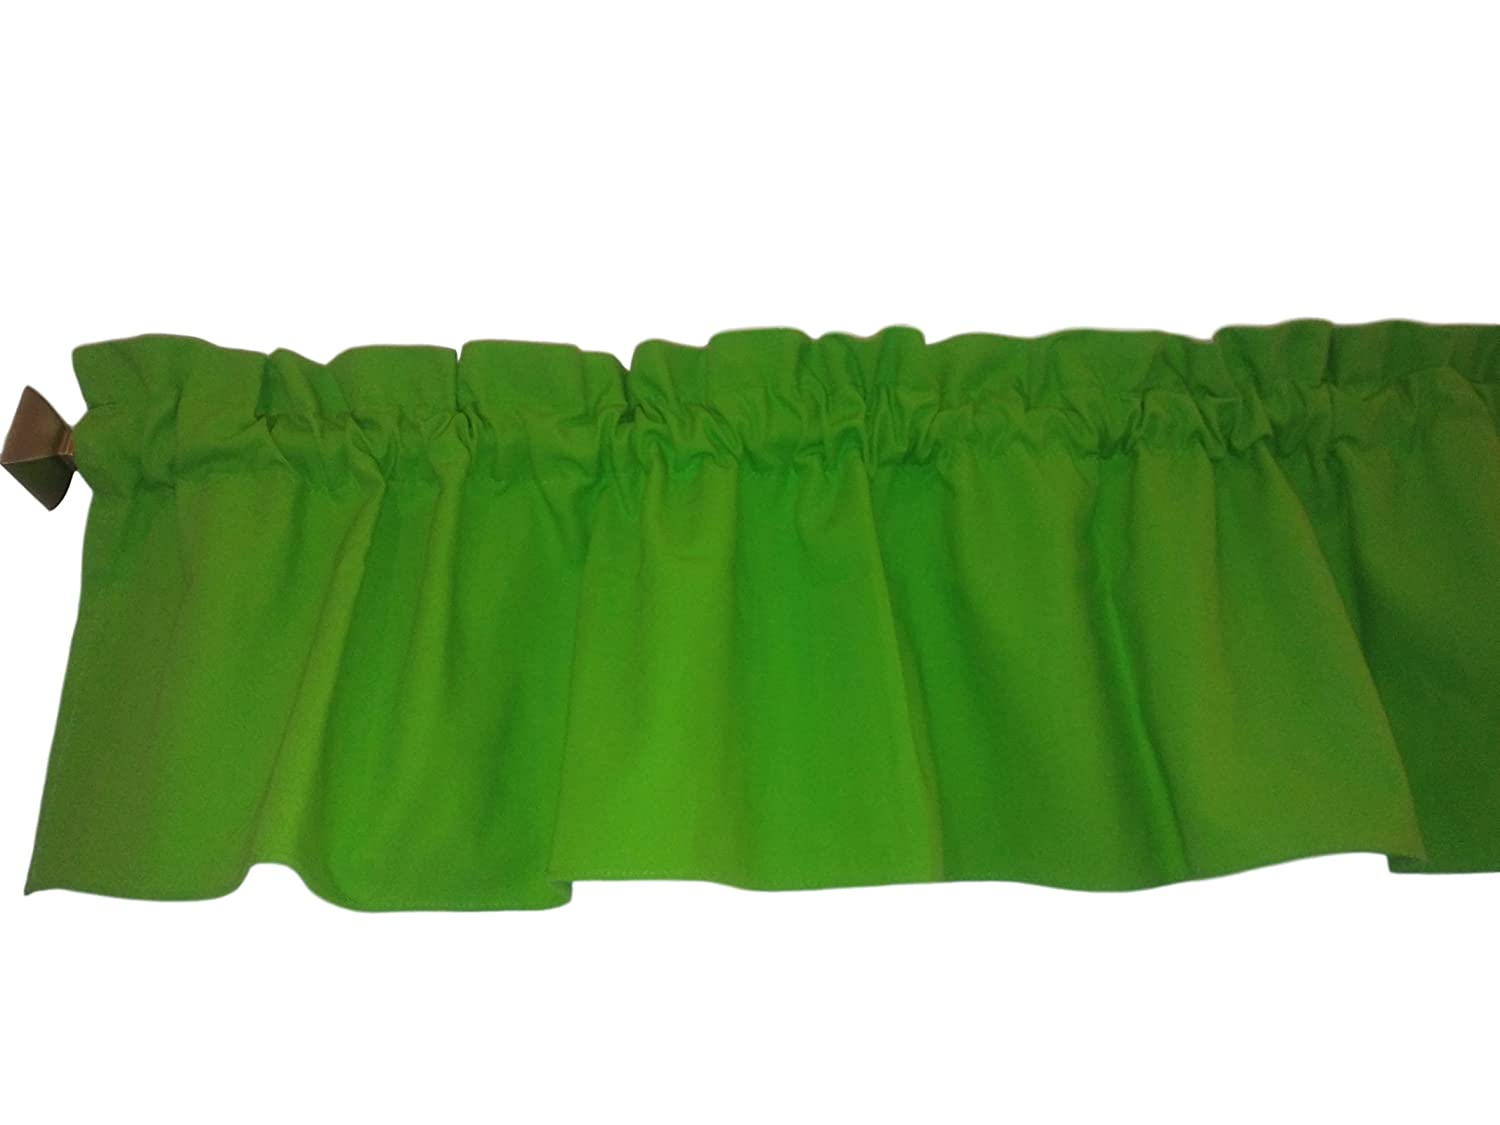 Ruffle Lime Green Valance Curtain Solid Color. Window treatment. Window Decor. Kitchen, classroom, Kids, wide 56